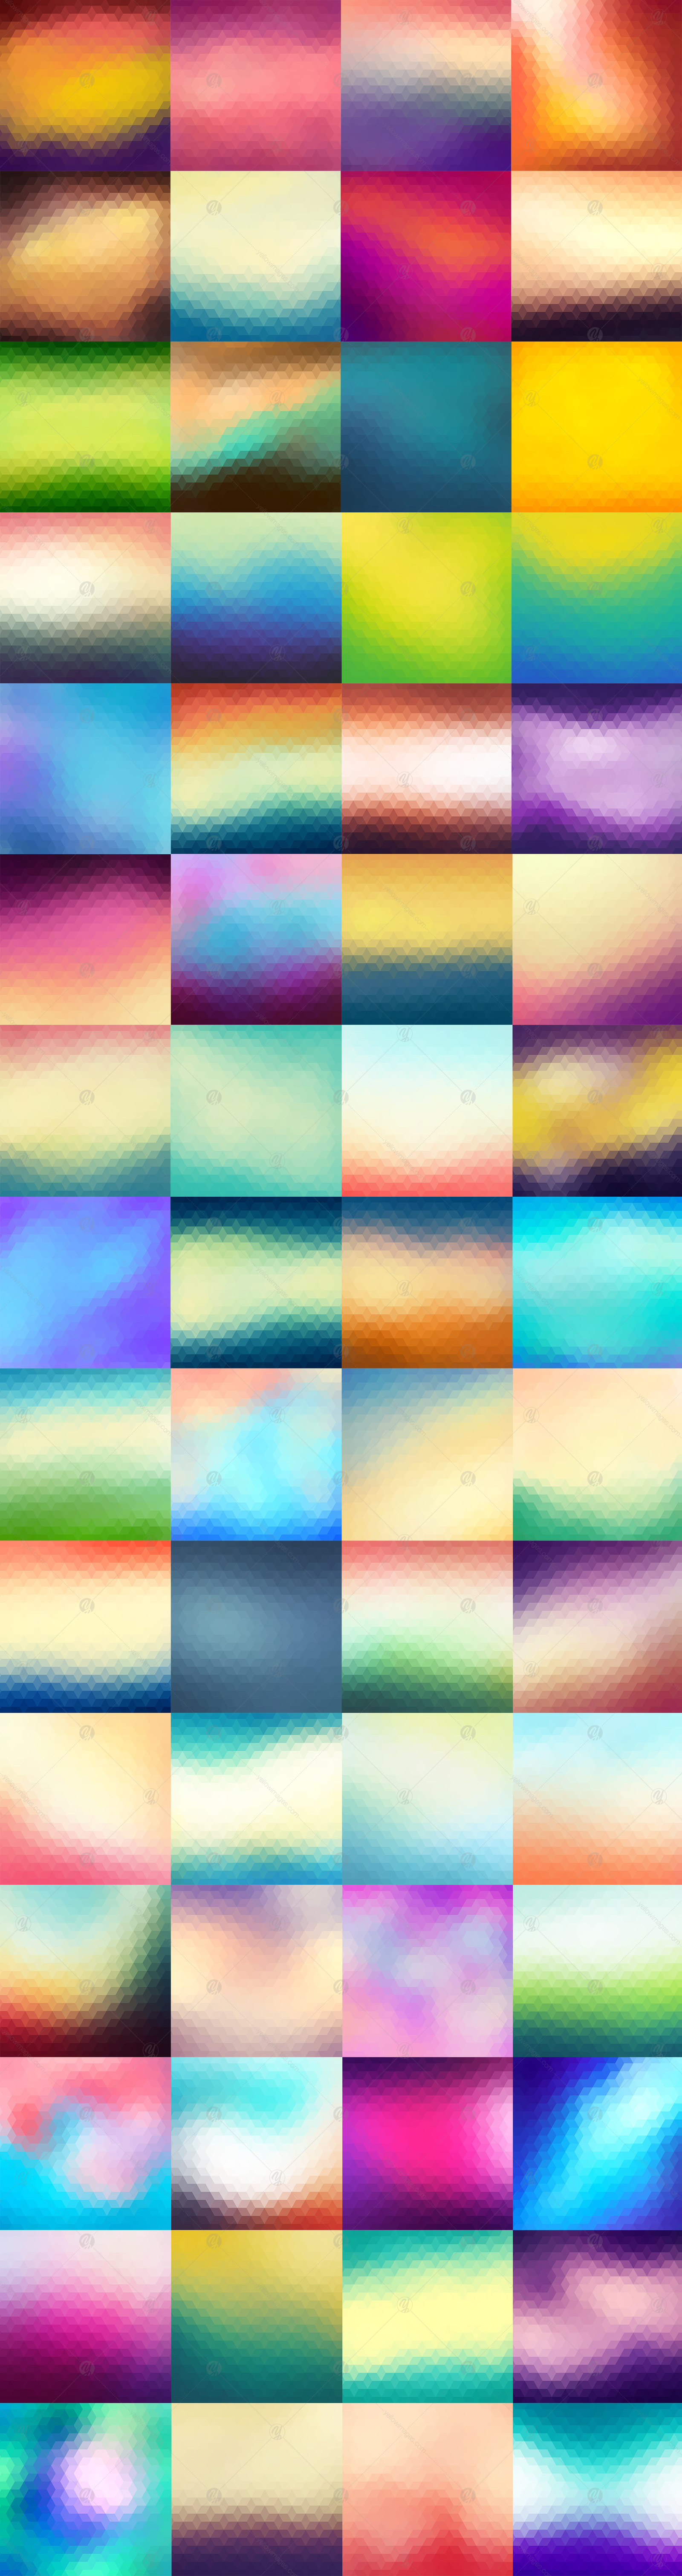 60 Colorful Geometric Backgrounds